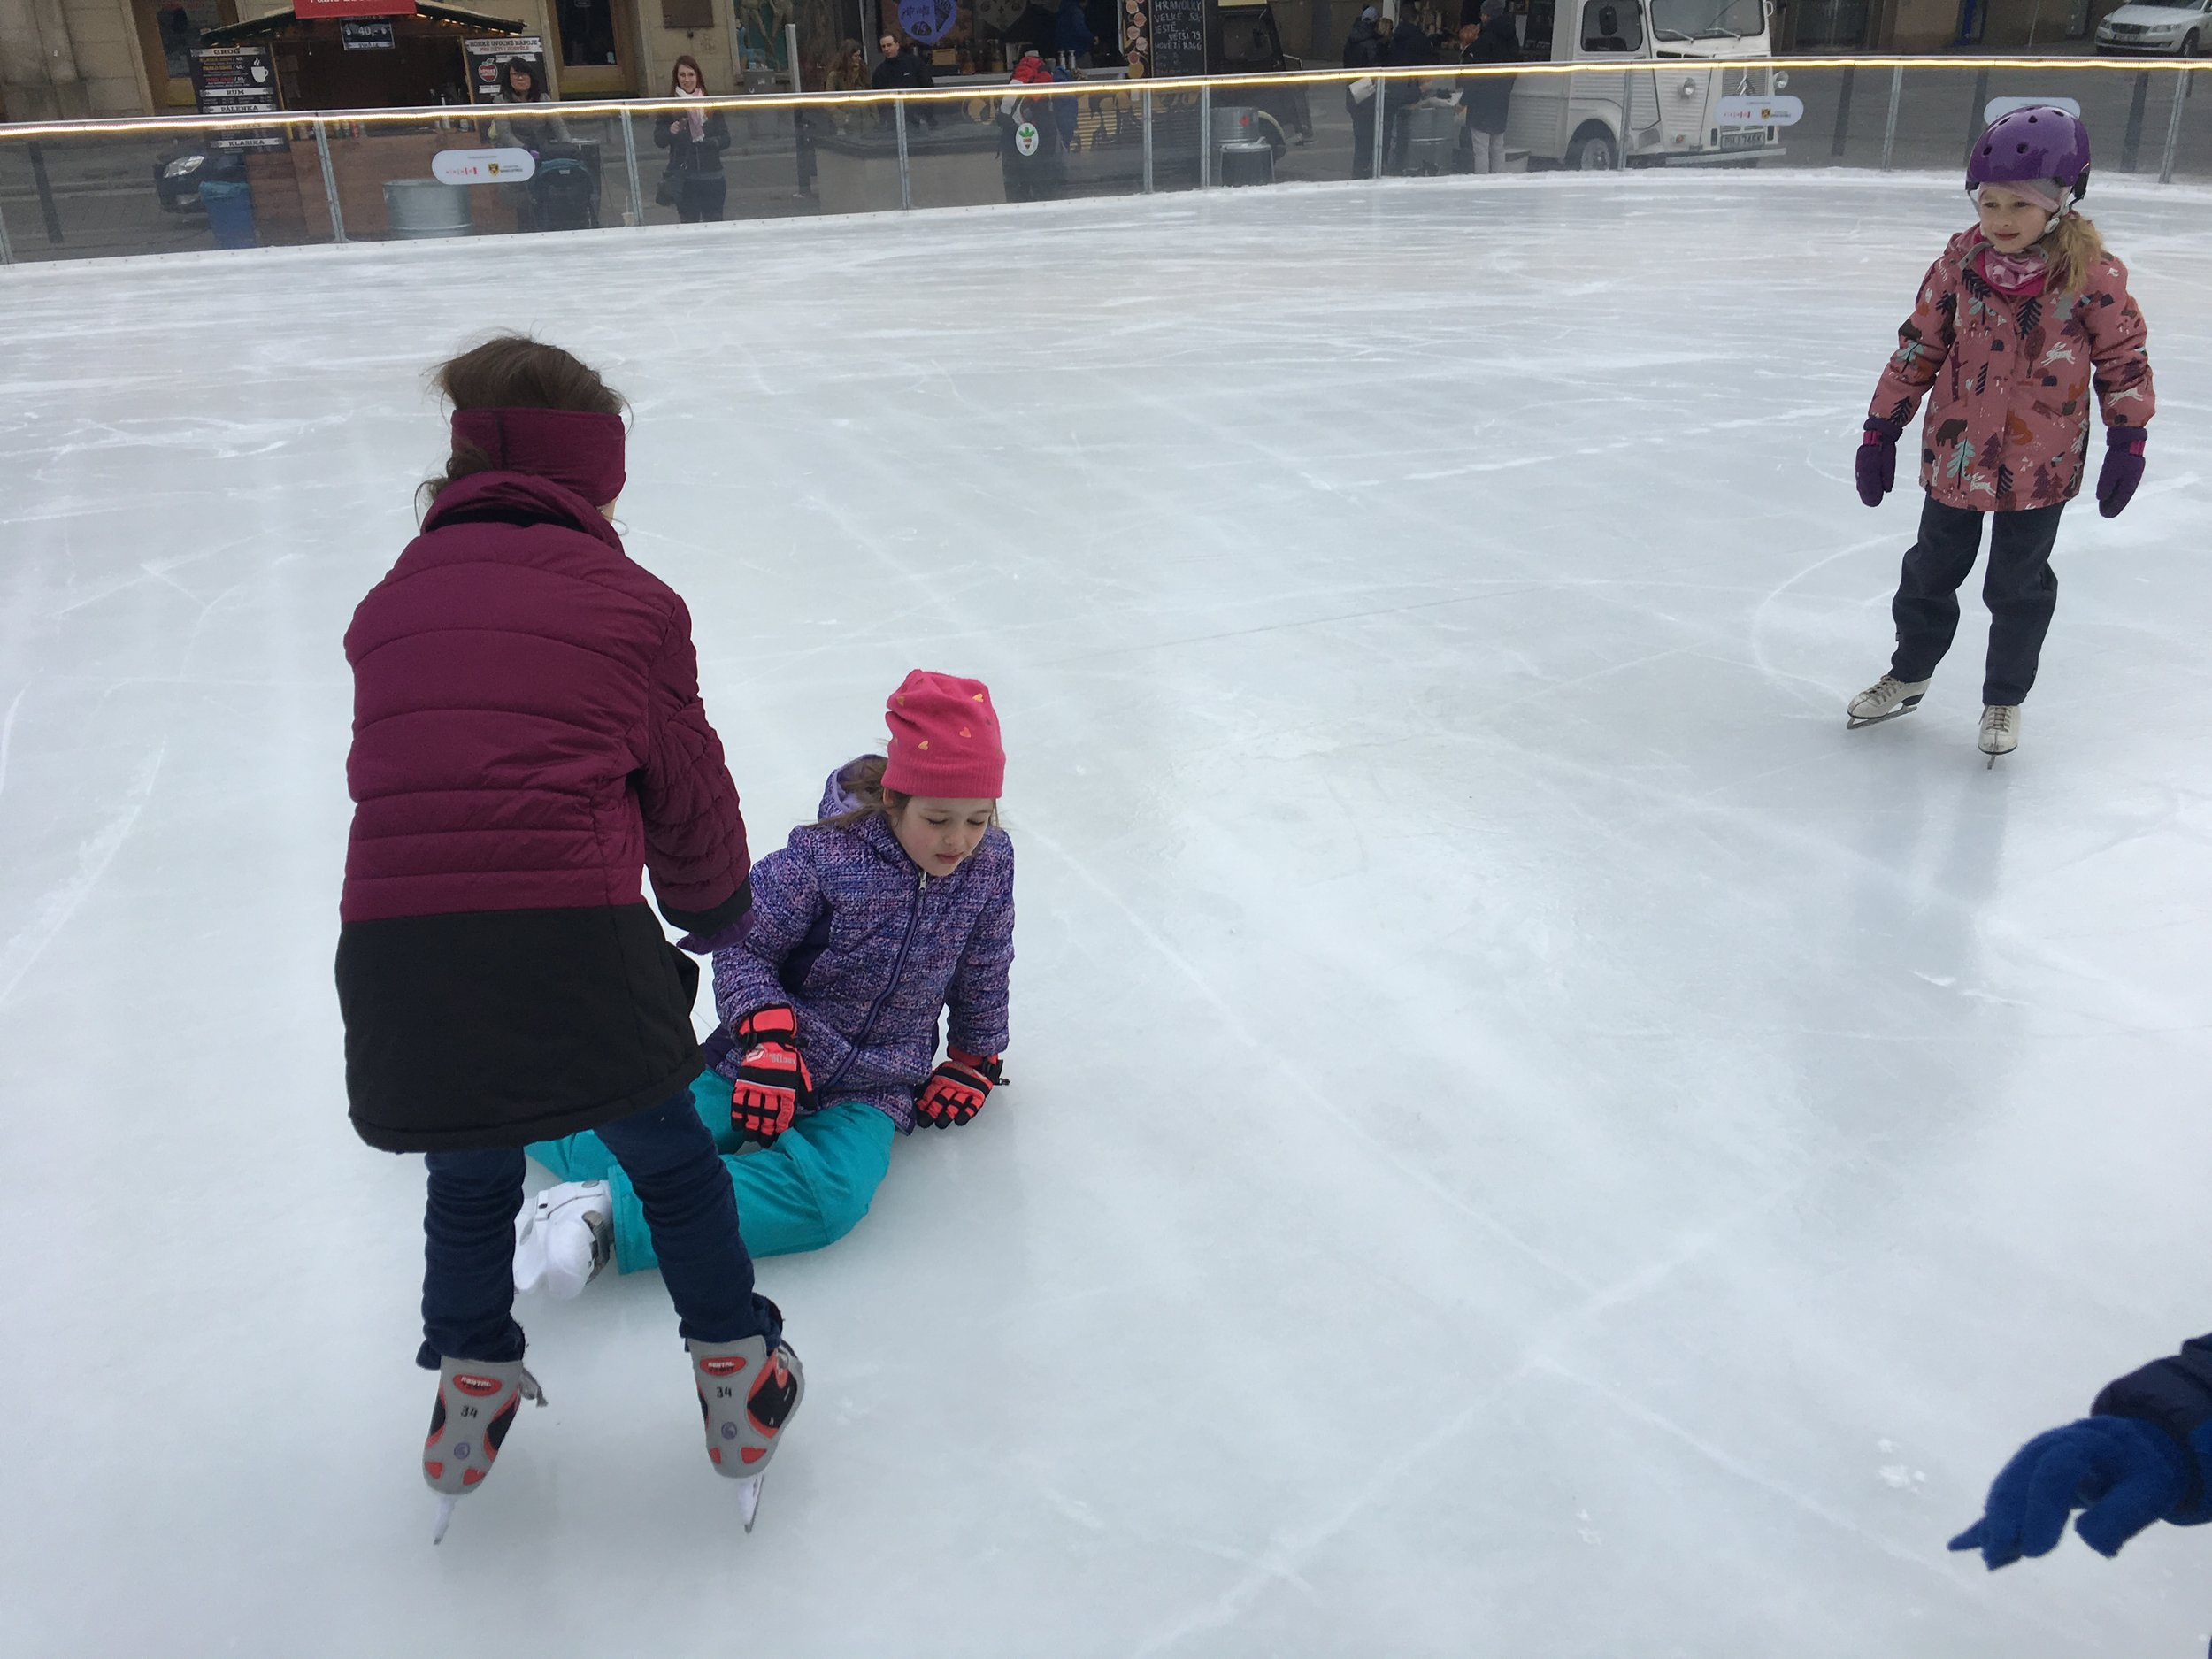 Kids ice skating in Brno…..Trying to.